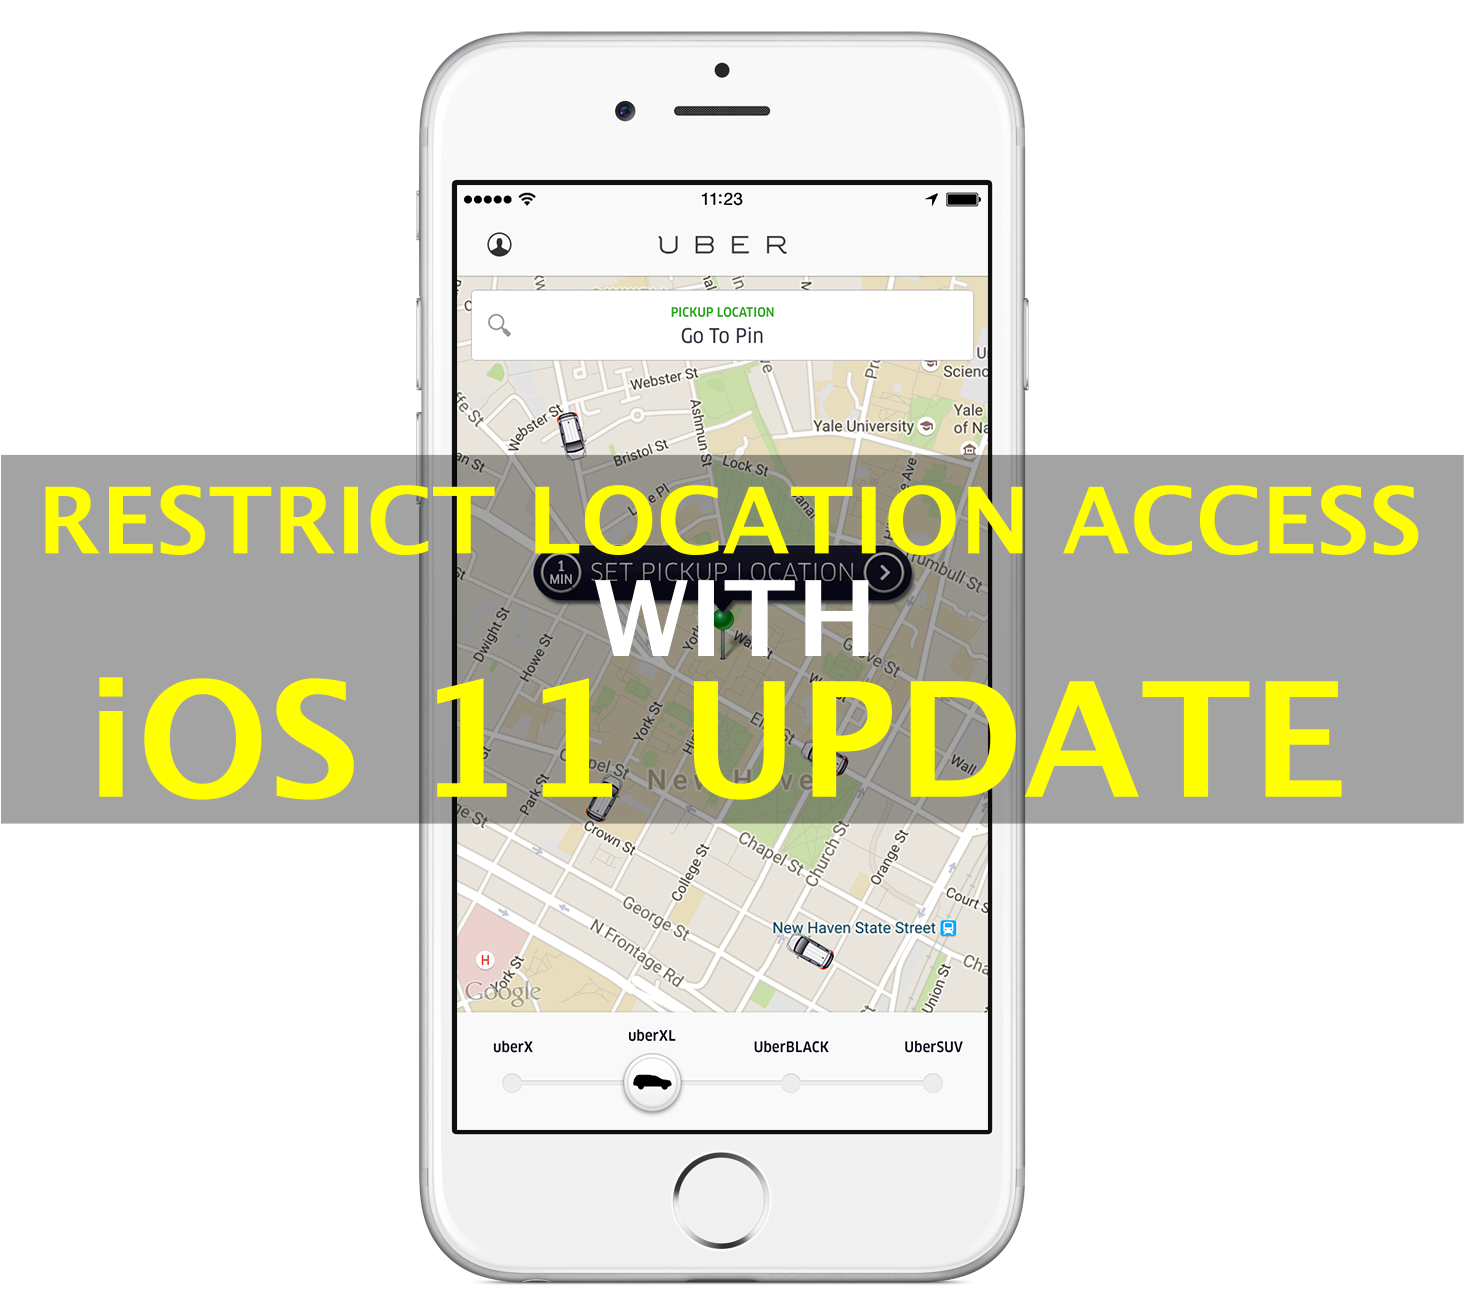 restrict-location-access-ios-11-security-update